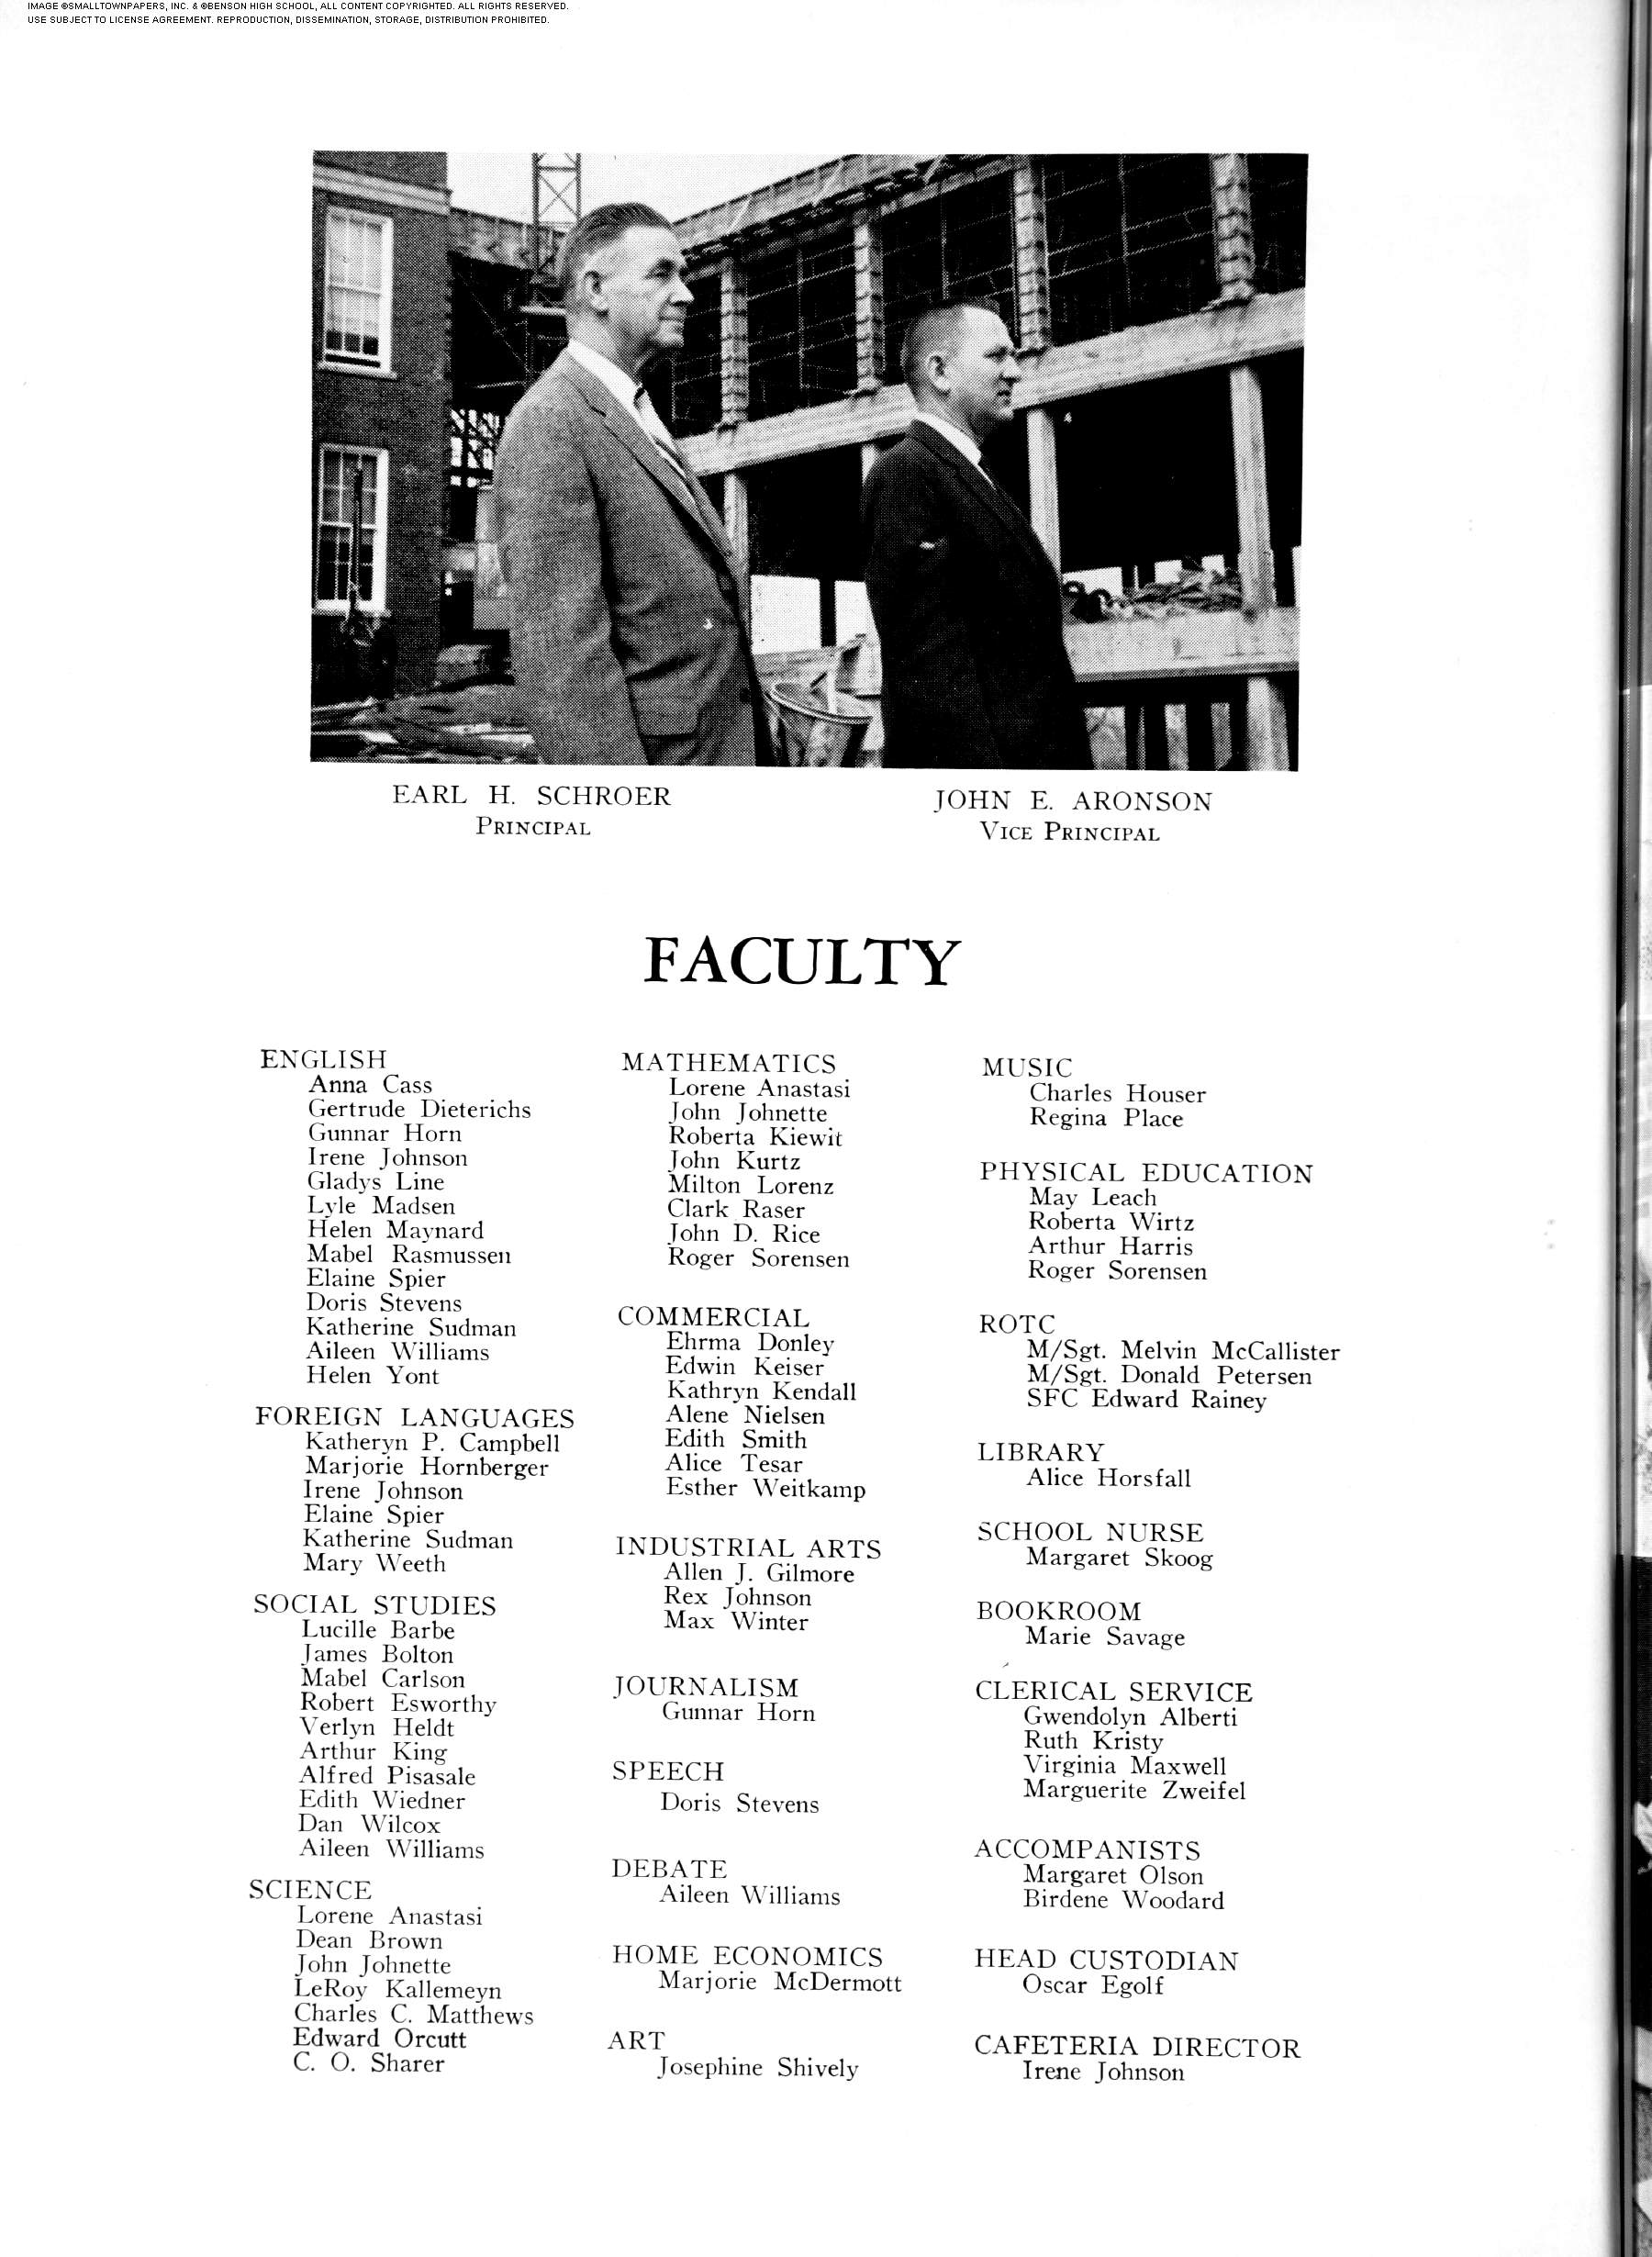 Benson High Yearbook The Cupola June 1, 1959: Page 6